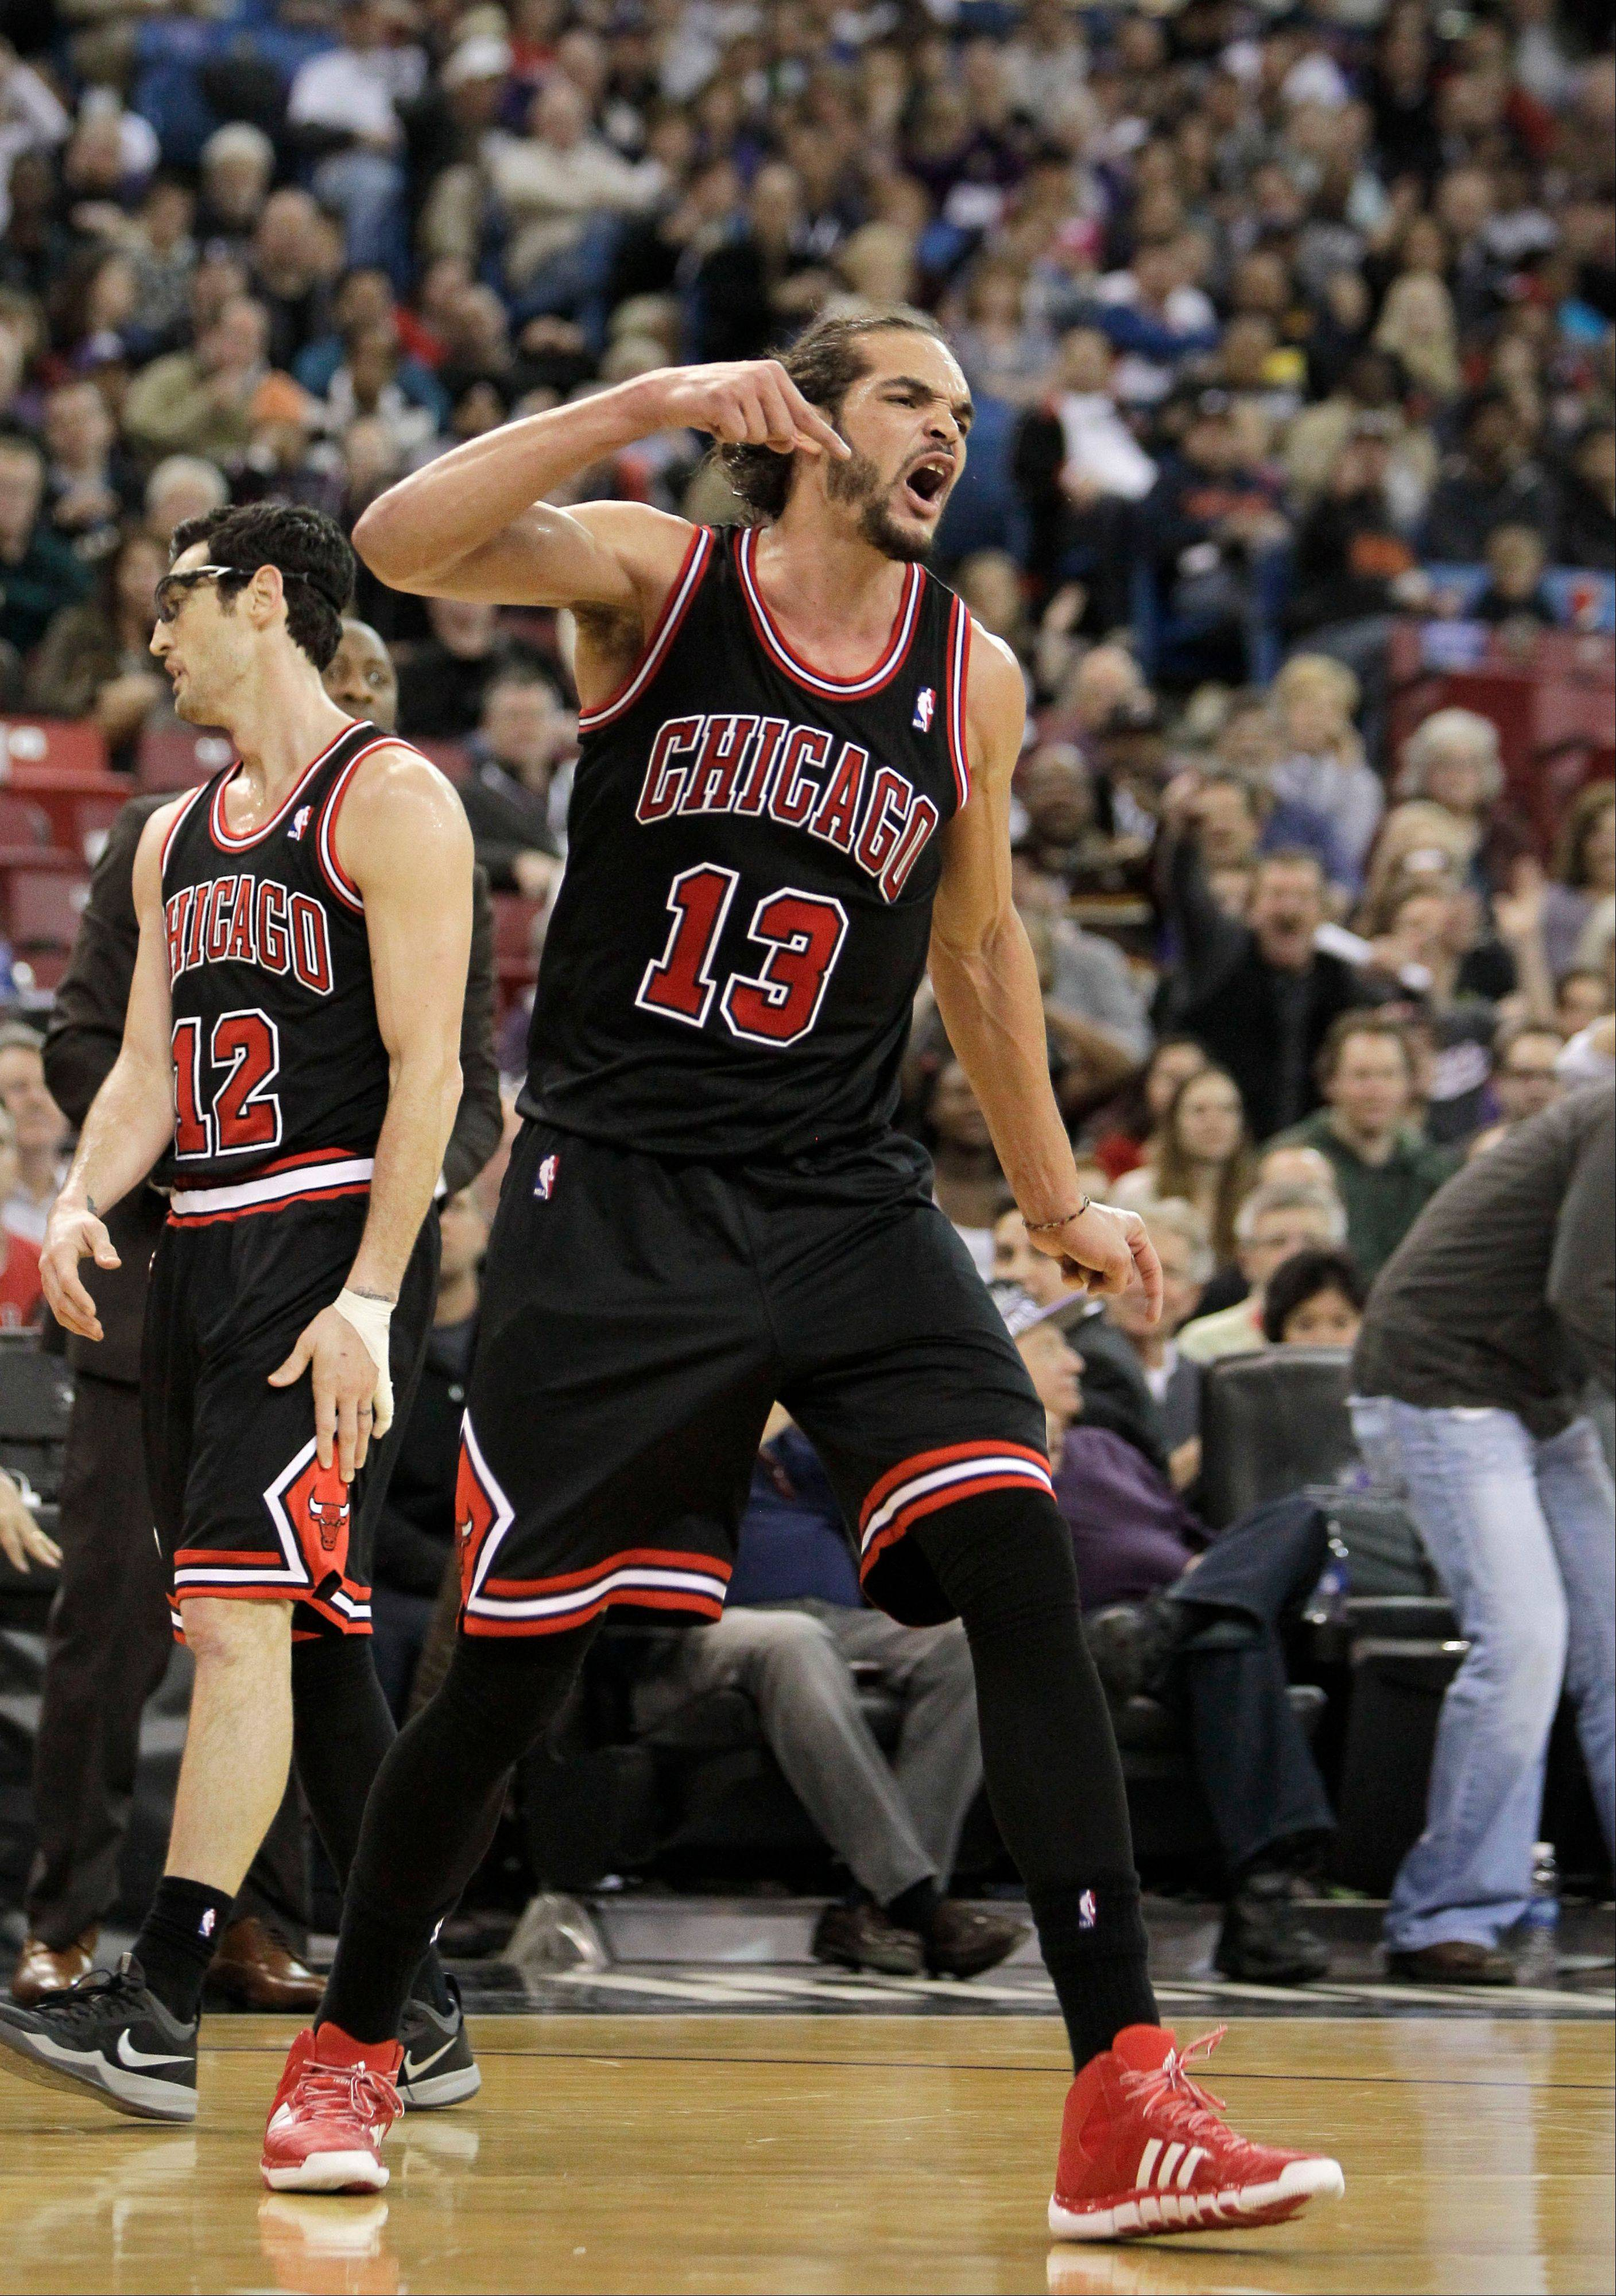 Chicago Bulls center Joakim Noah shouts after getting his second technical foul and was ejected from the game in the third quarter against the Sacramento Kings on Monday. The Kings won 99-70.